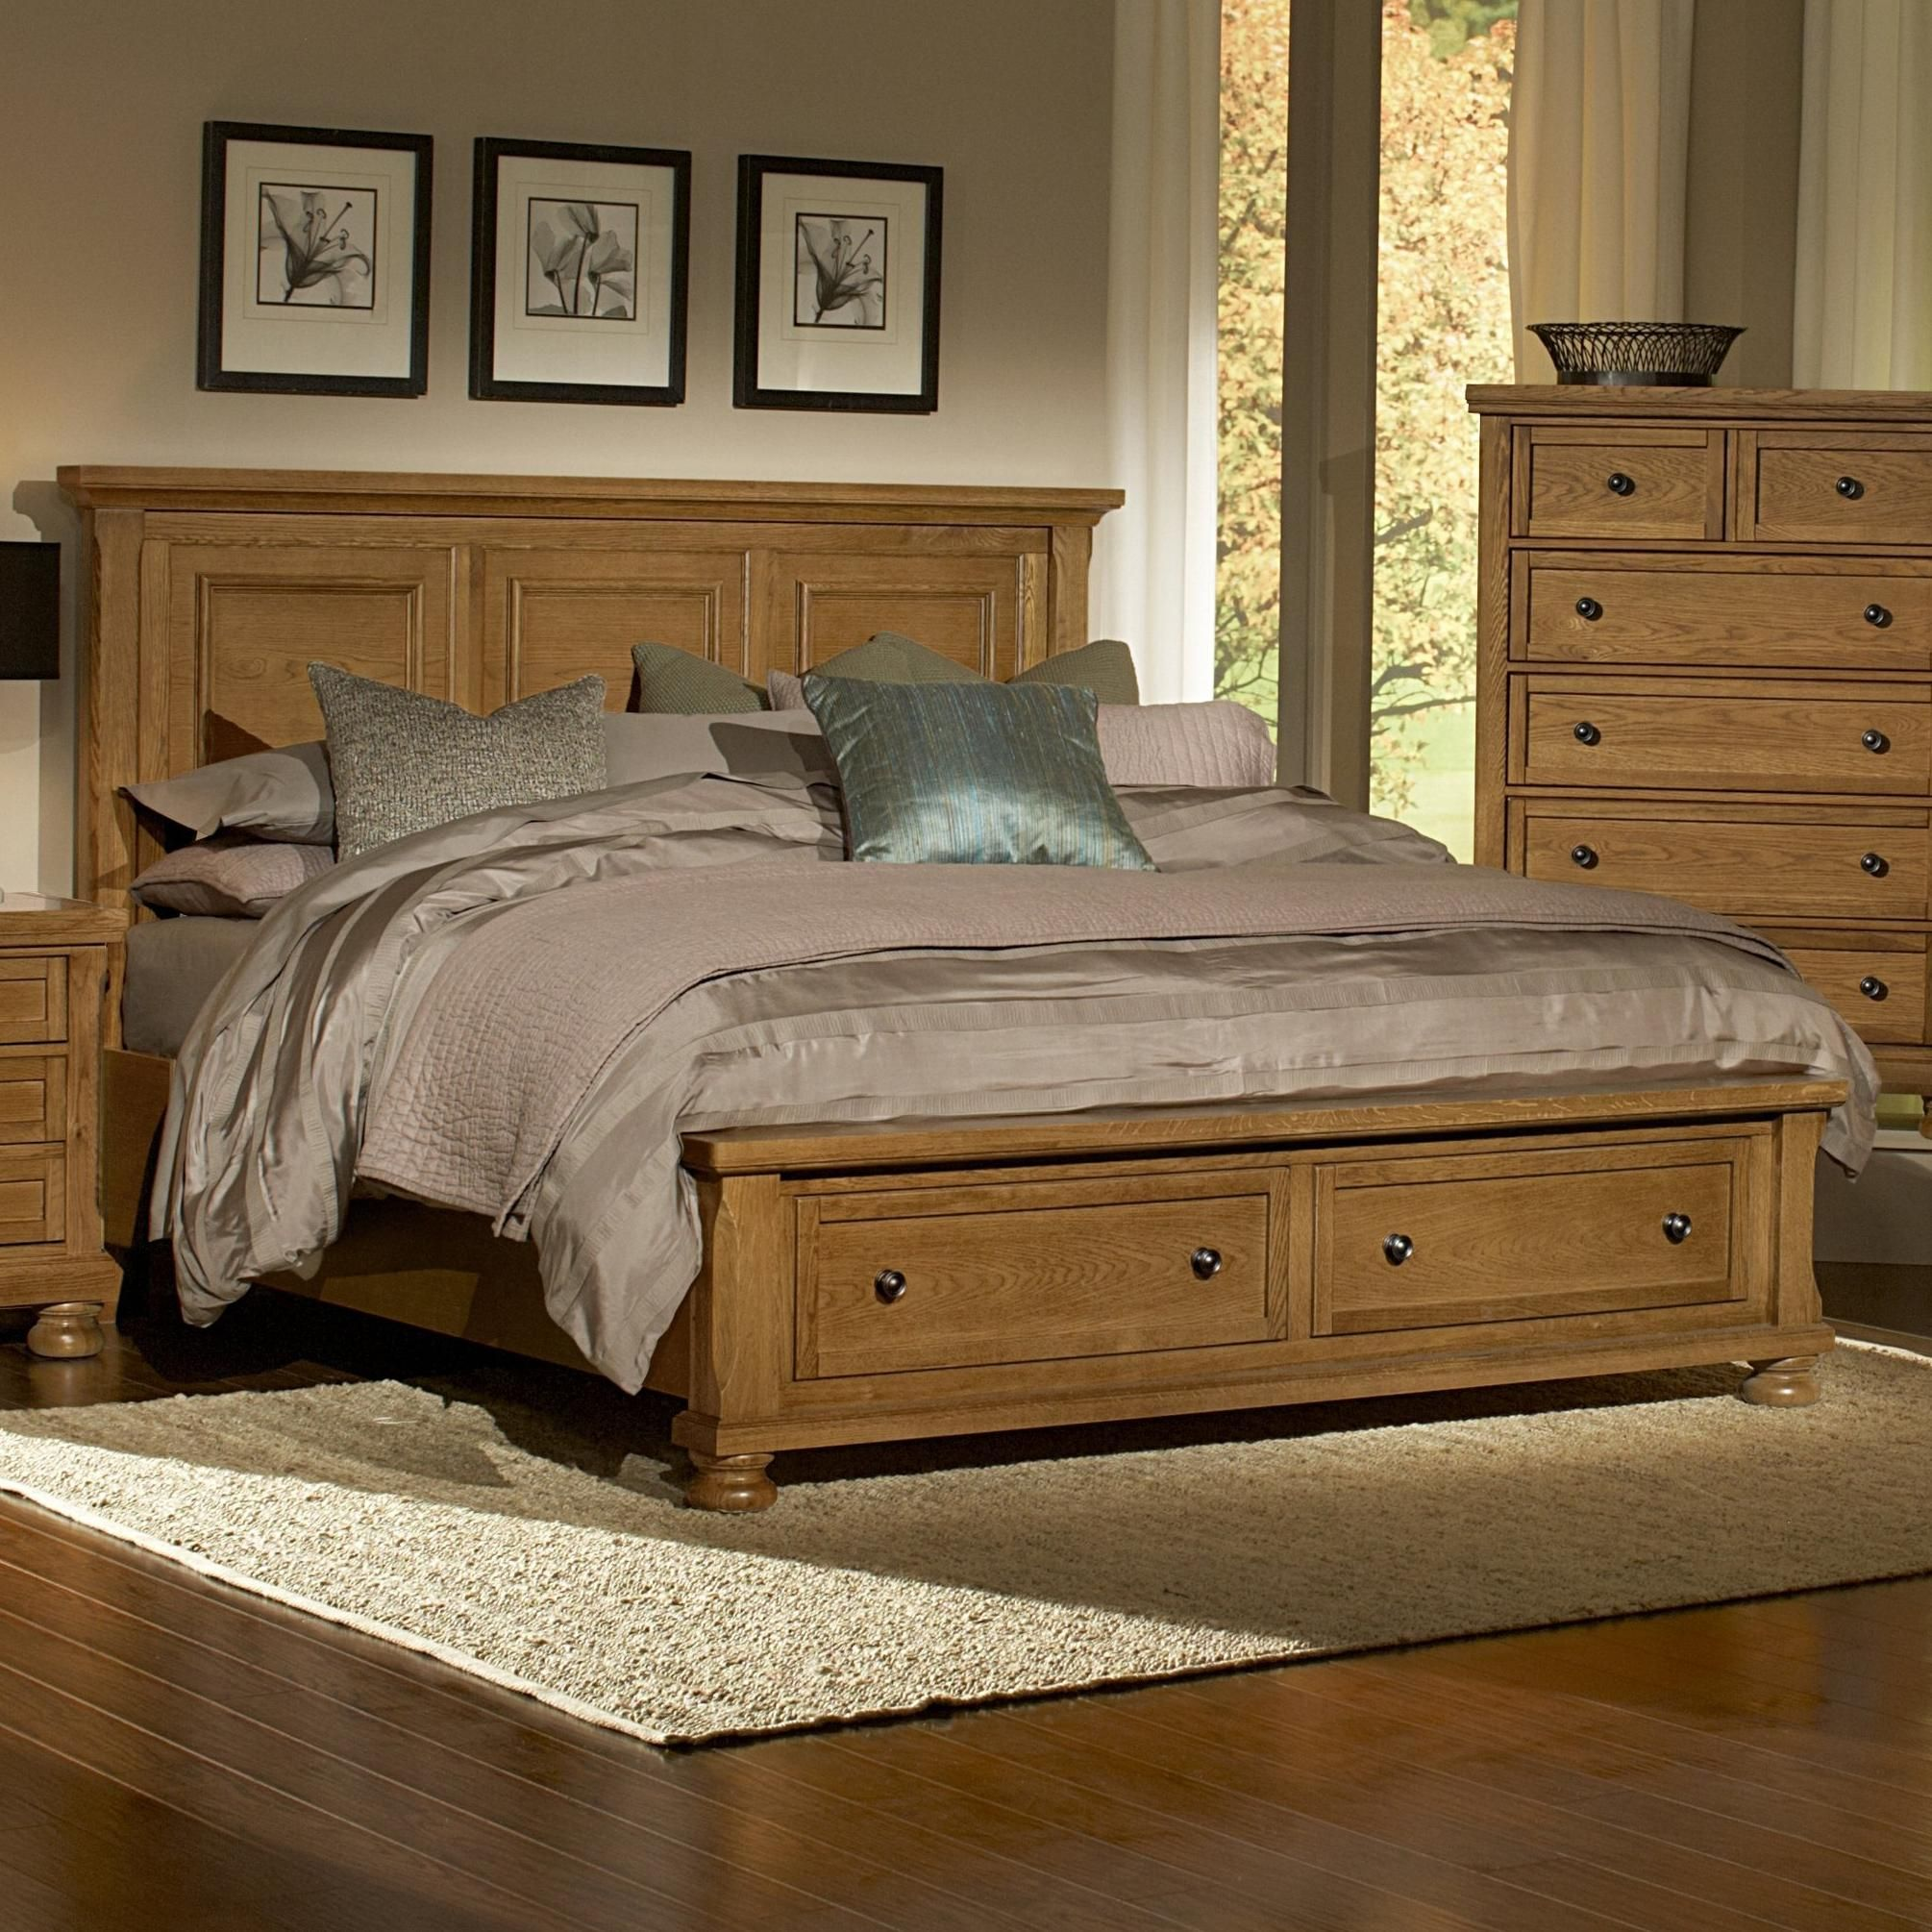 vaughan bassett reflections king storage bed with mansion vaughan bassett reflections king storage bed with sleigh